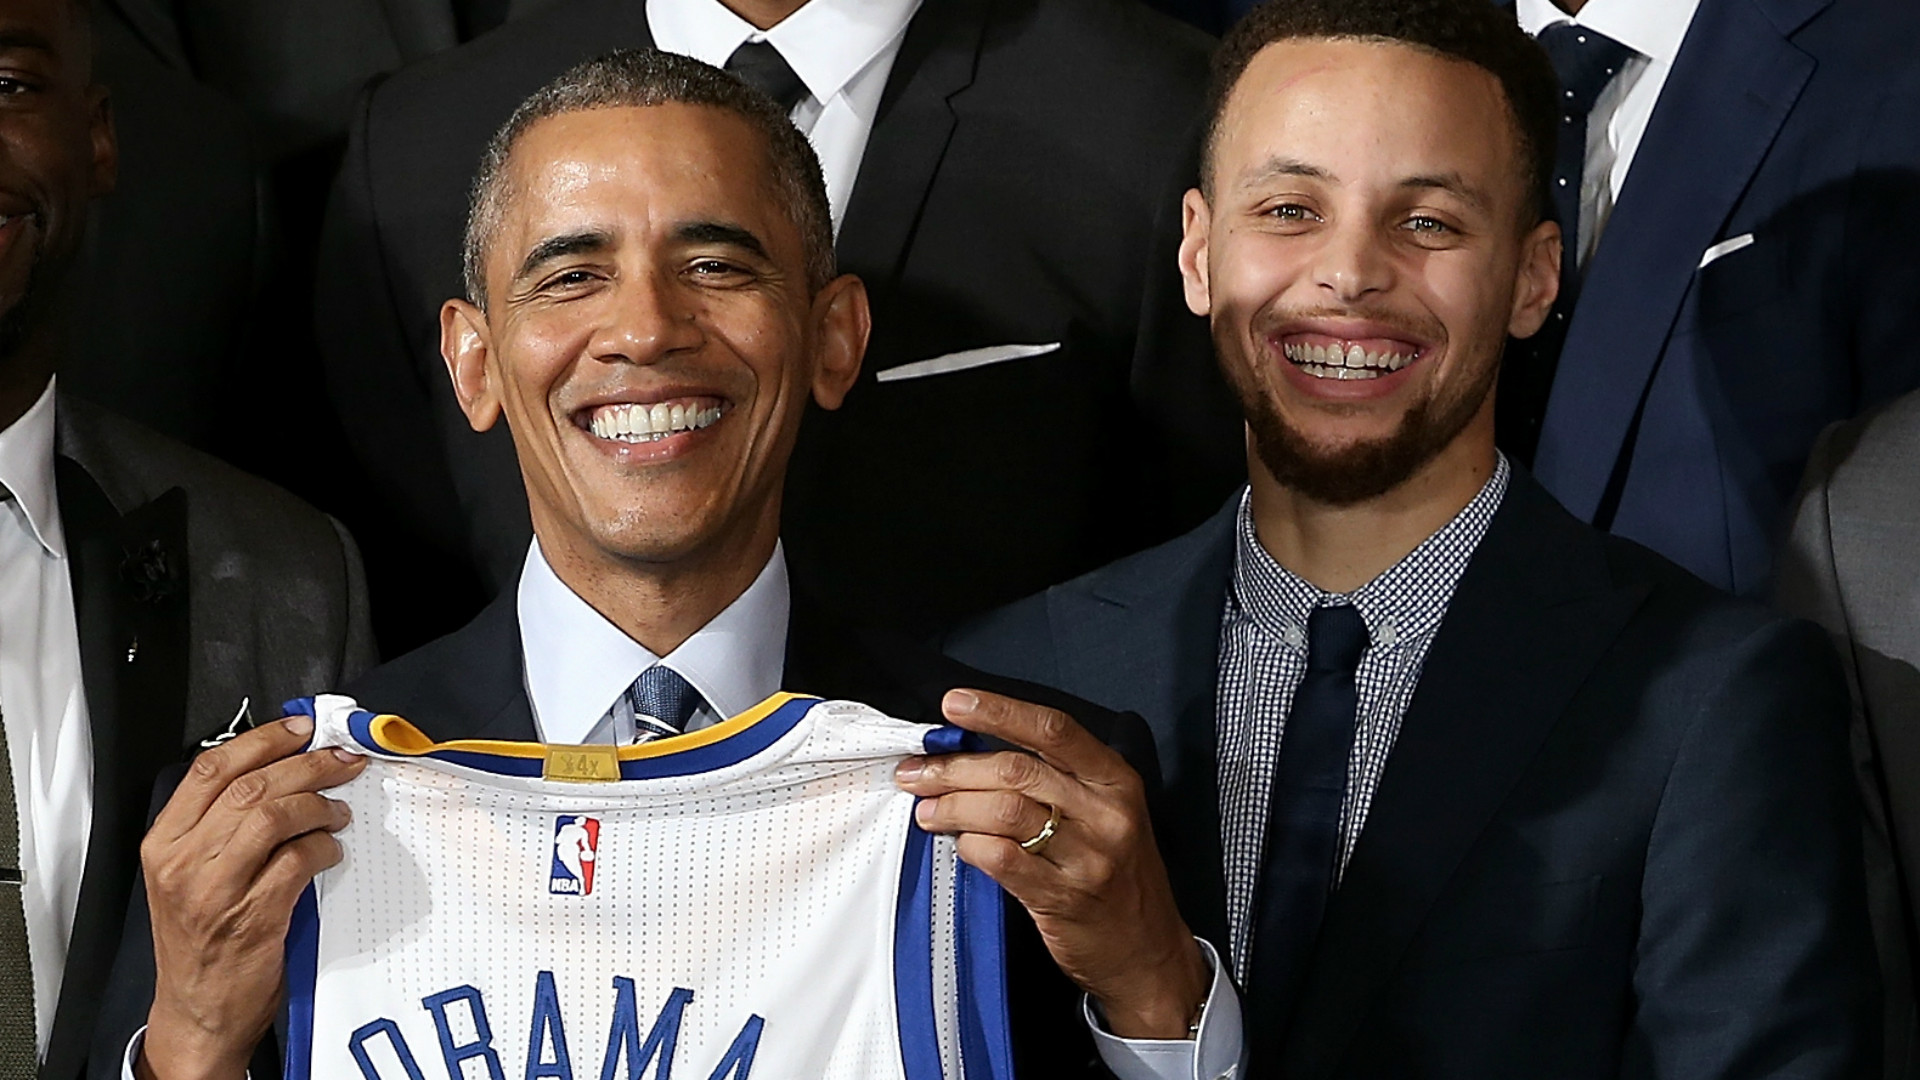 1920x1080 President Obama is not putting Stephen Curry above Michael Jordan